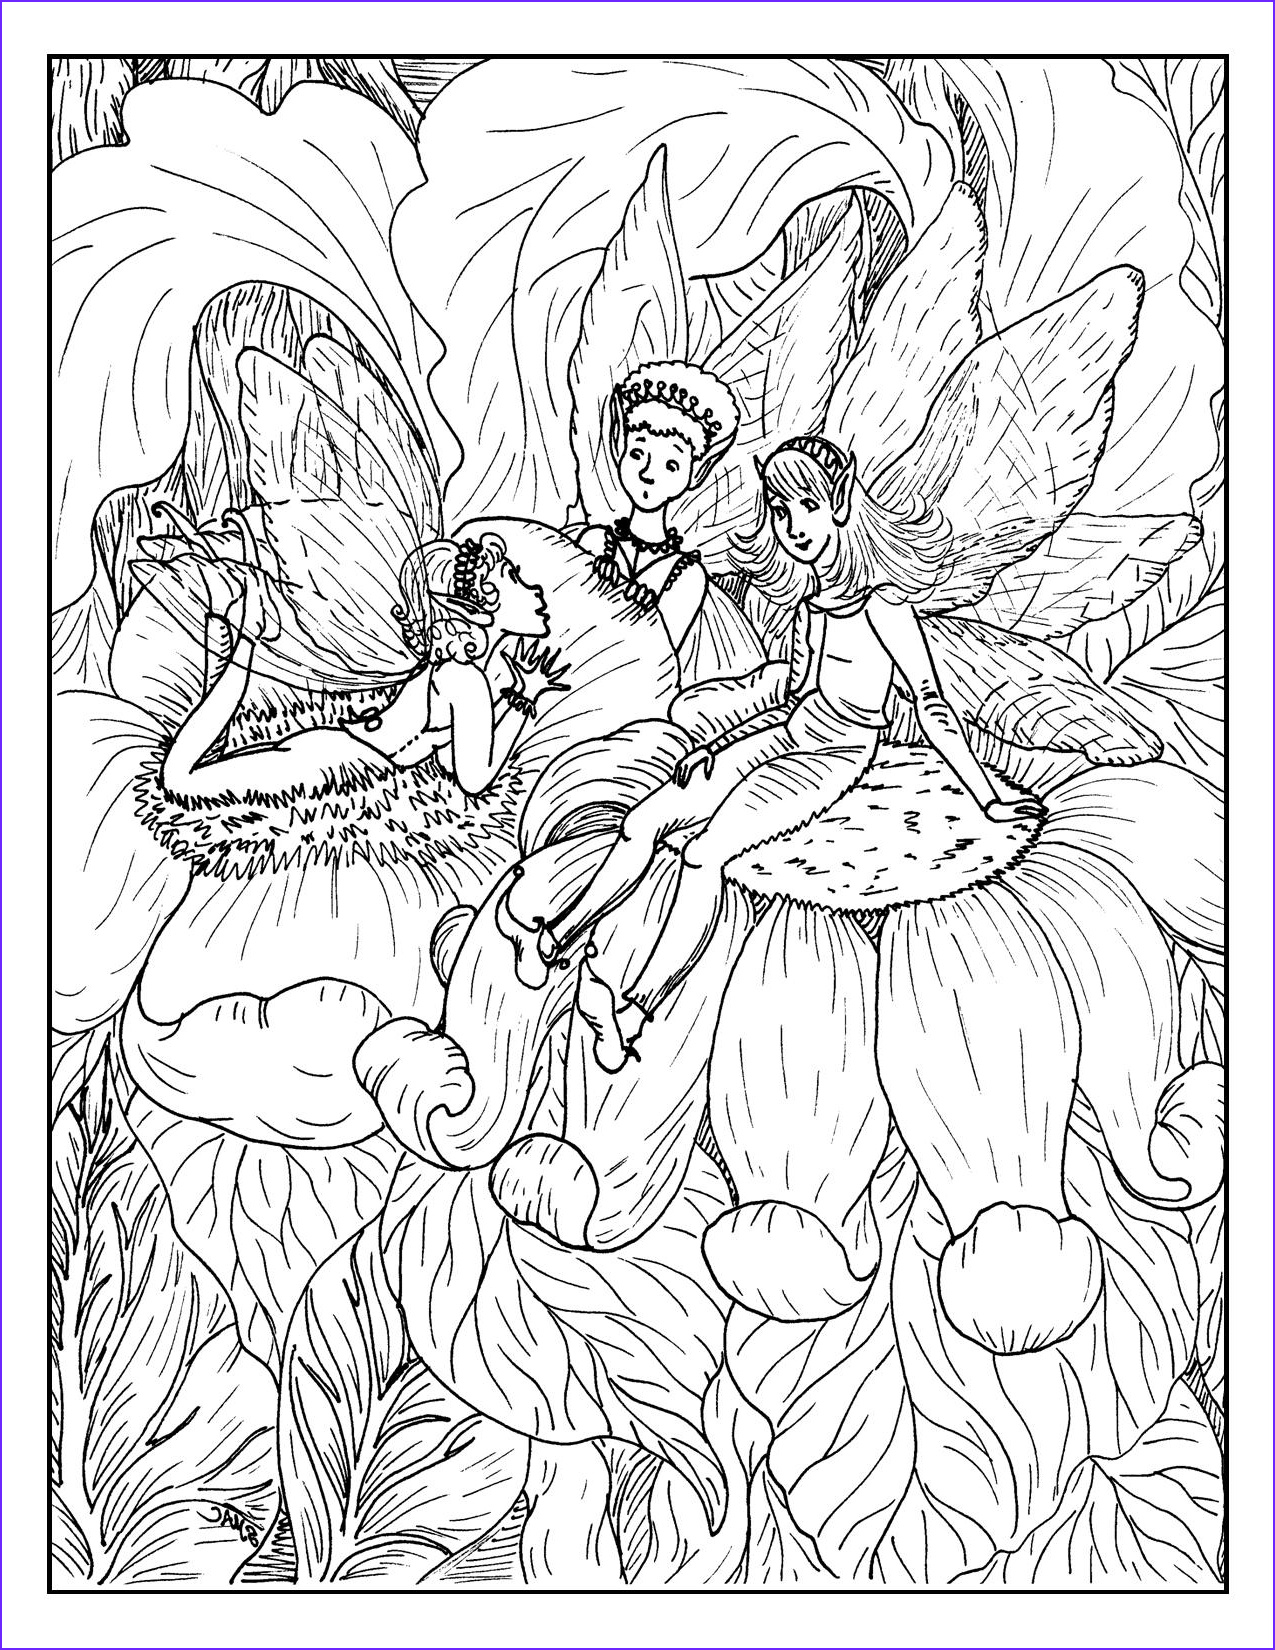 Fantasy Adult Coloring Pages Beautiful Images Fantasy Coloring Pages – S Mac S Place to Be